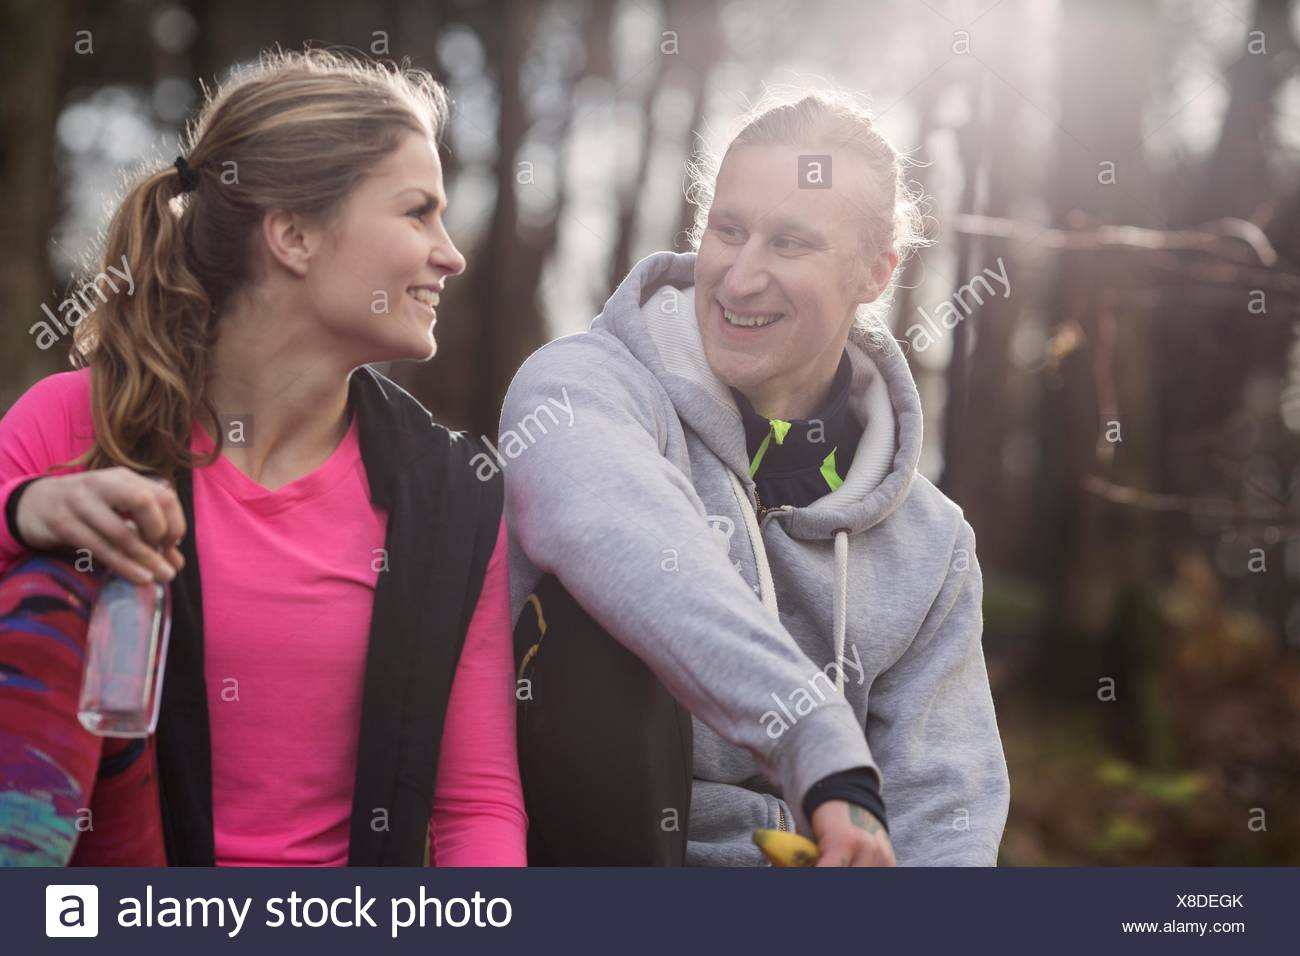 Couple wearing sports clothing holding water bottle sitting face to face smiling - Stock Image